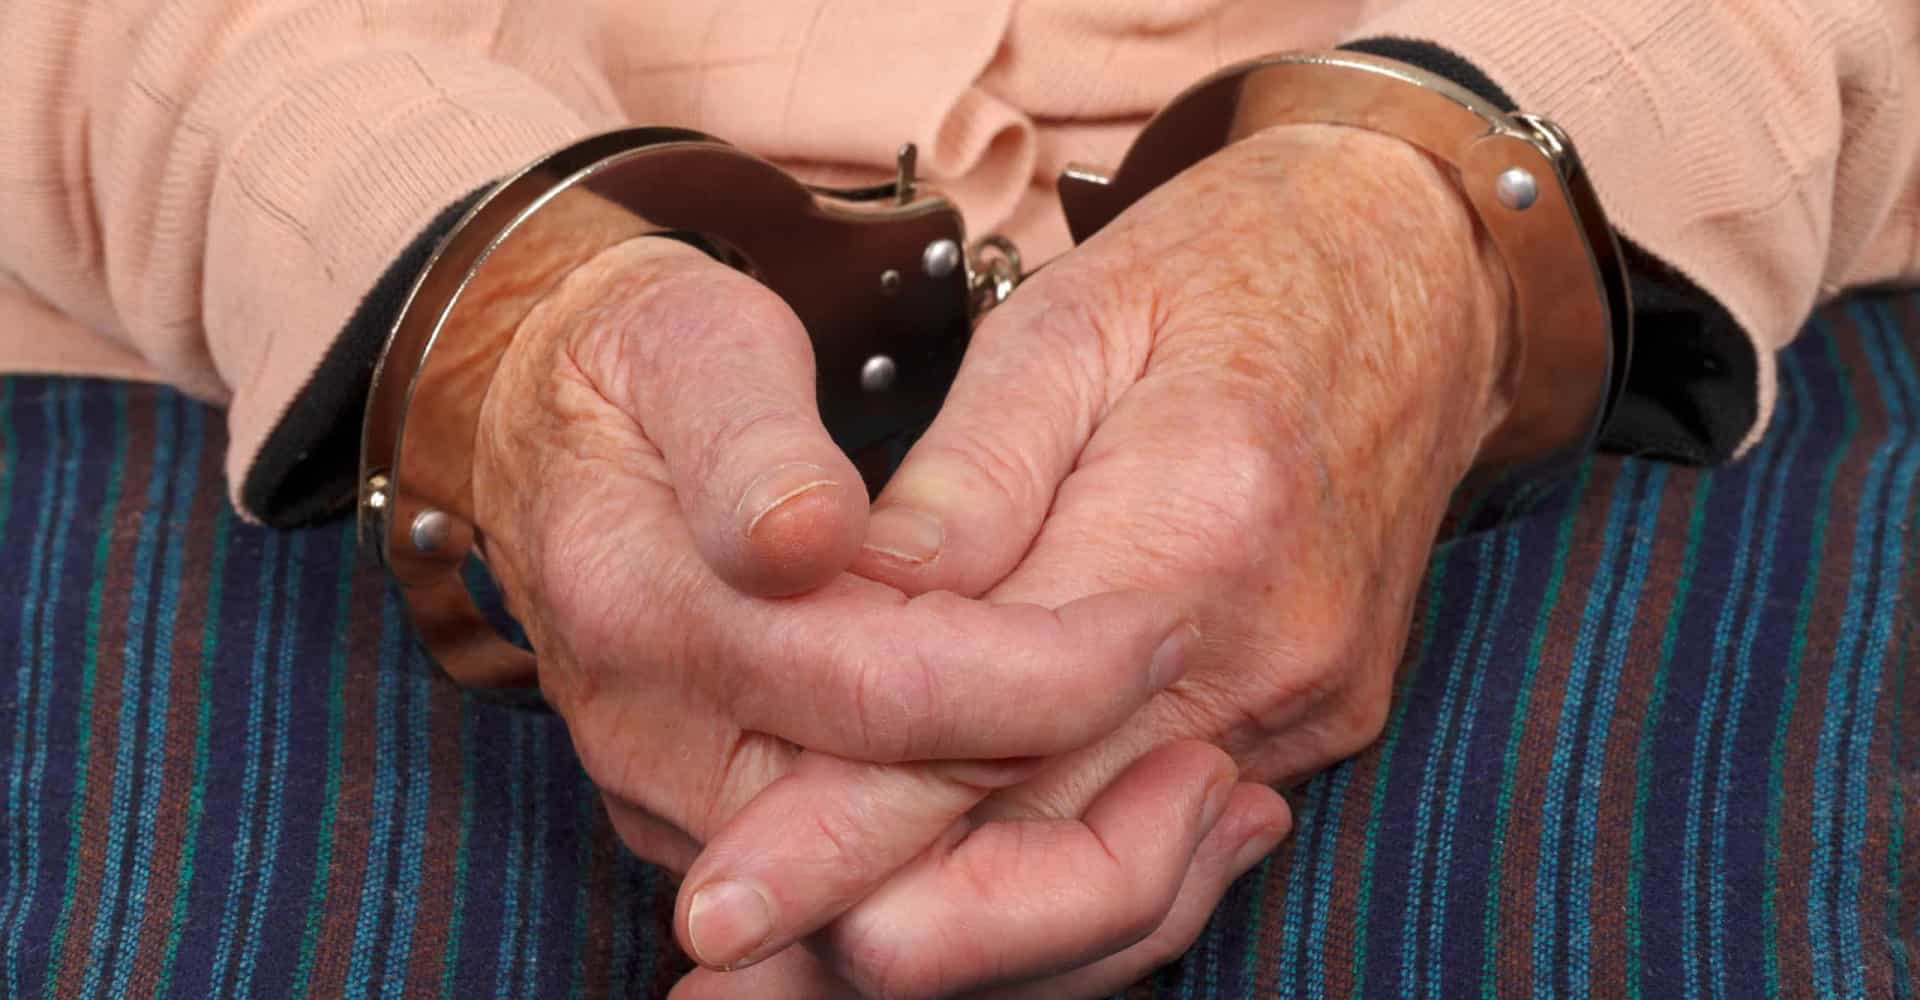 The sweetest old ladies you'd never guess were brutal murderers